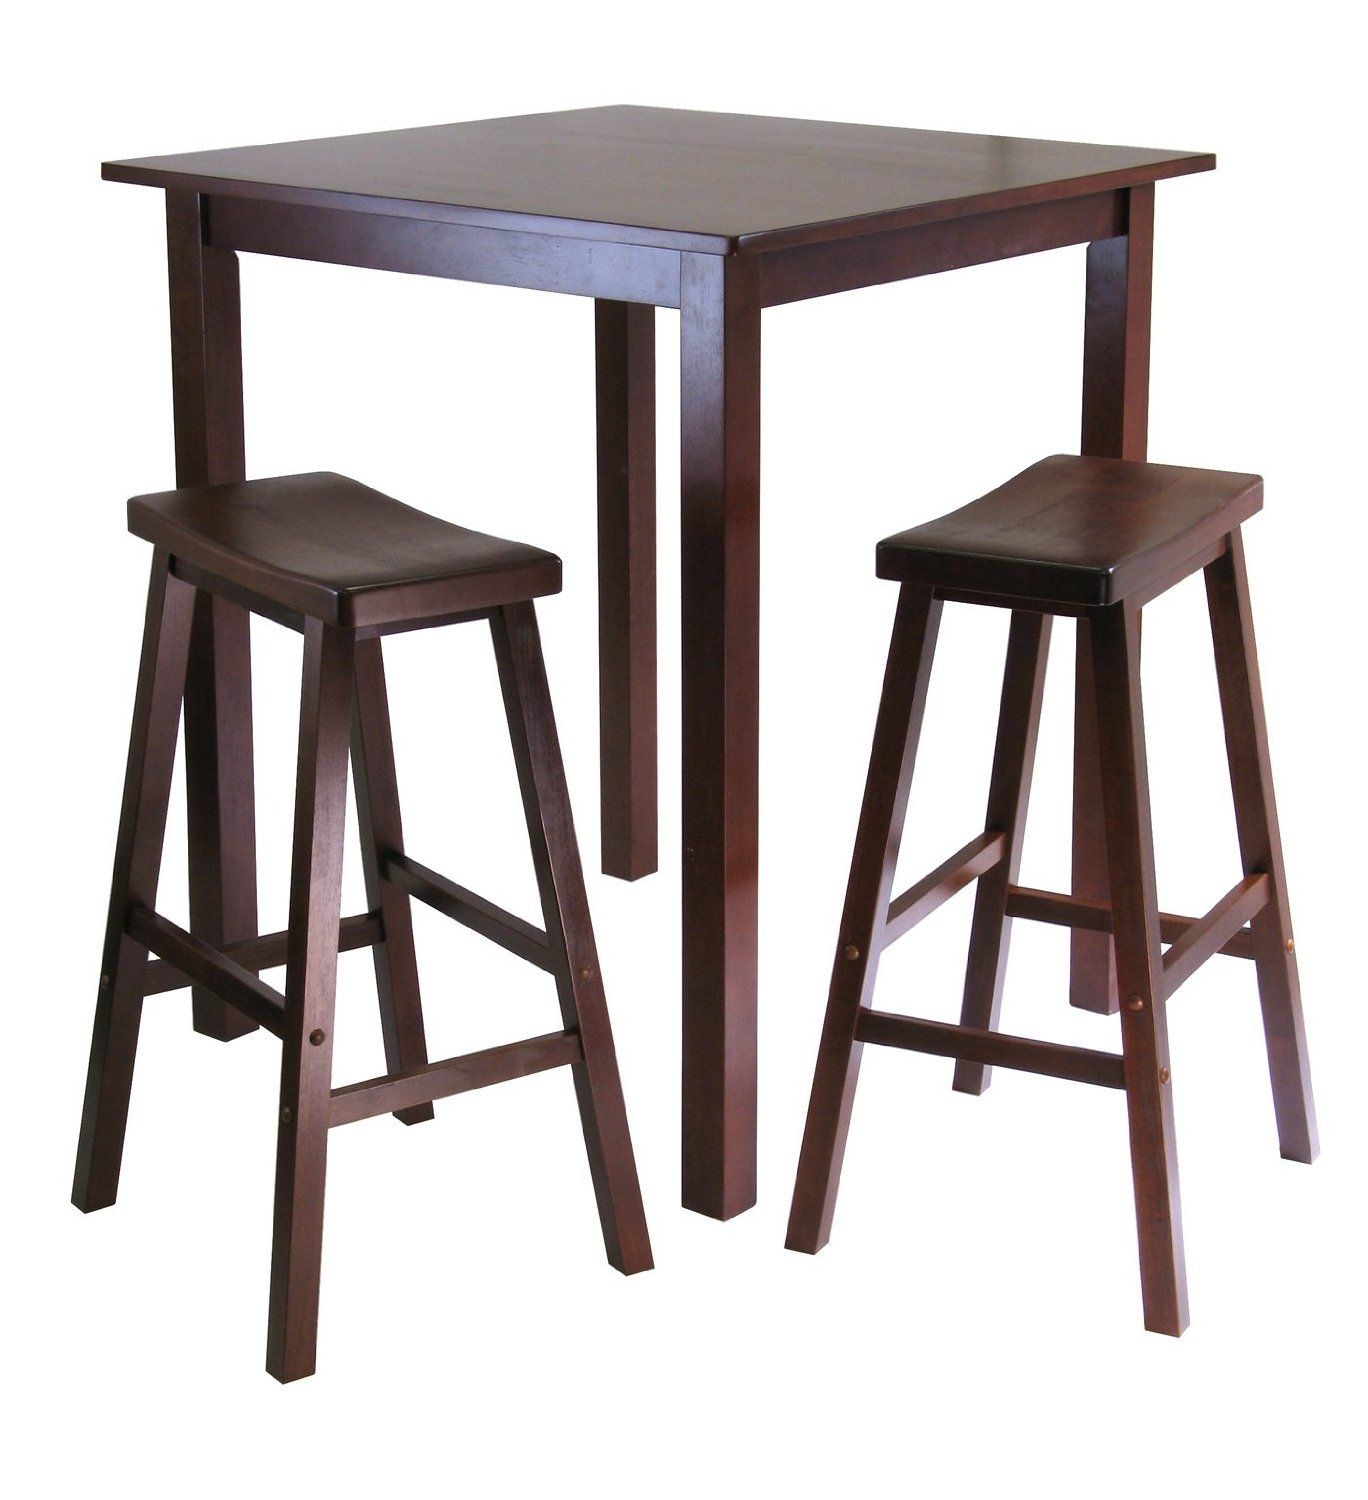 Winsomes Parkland Square High Pub Table Set In Antique Walnut Finish New Made Of Solid Wood With Clean Lines For A